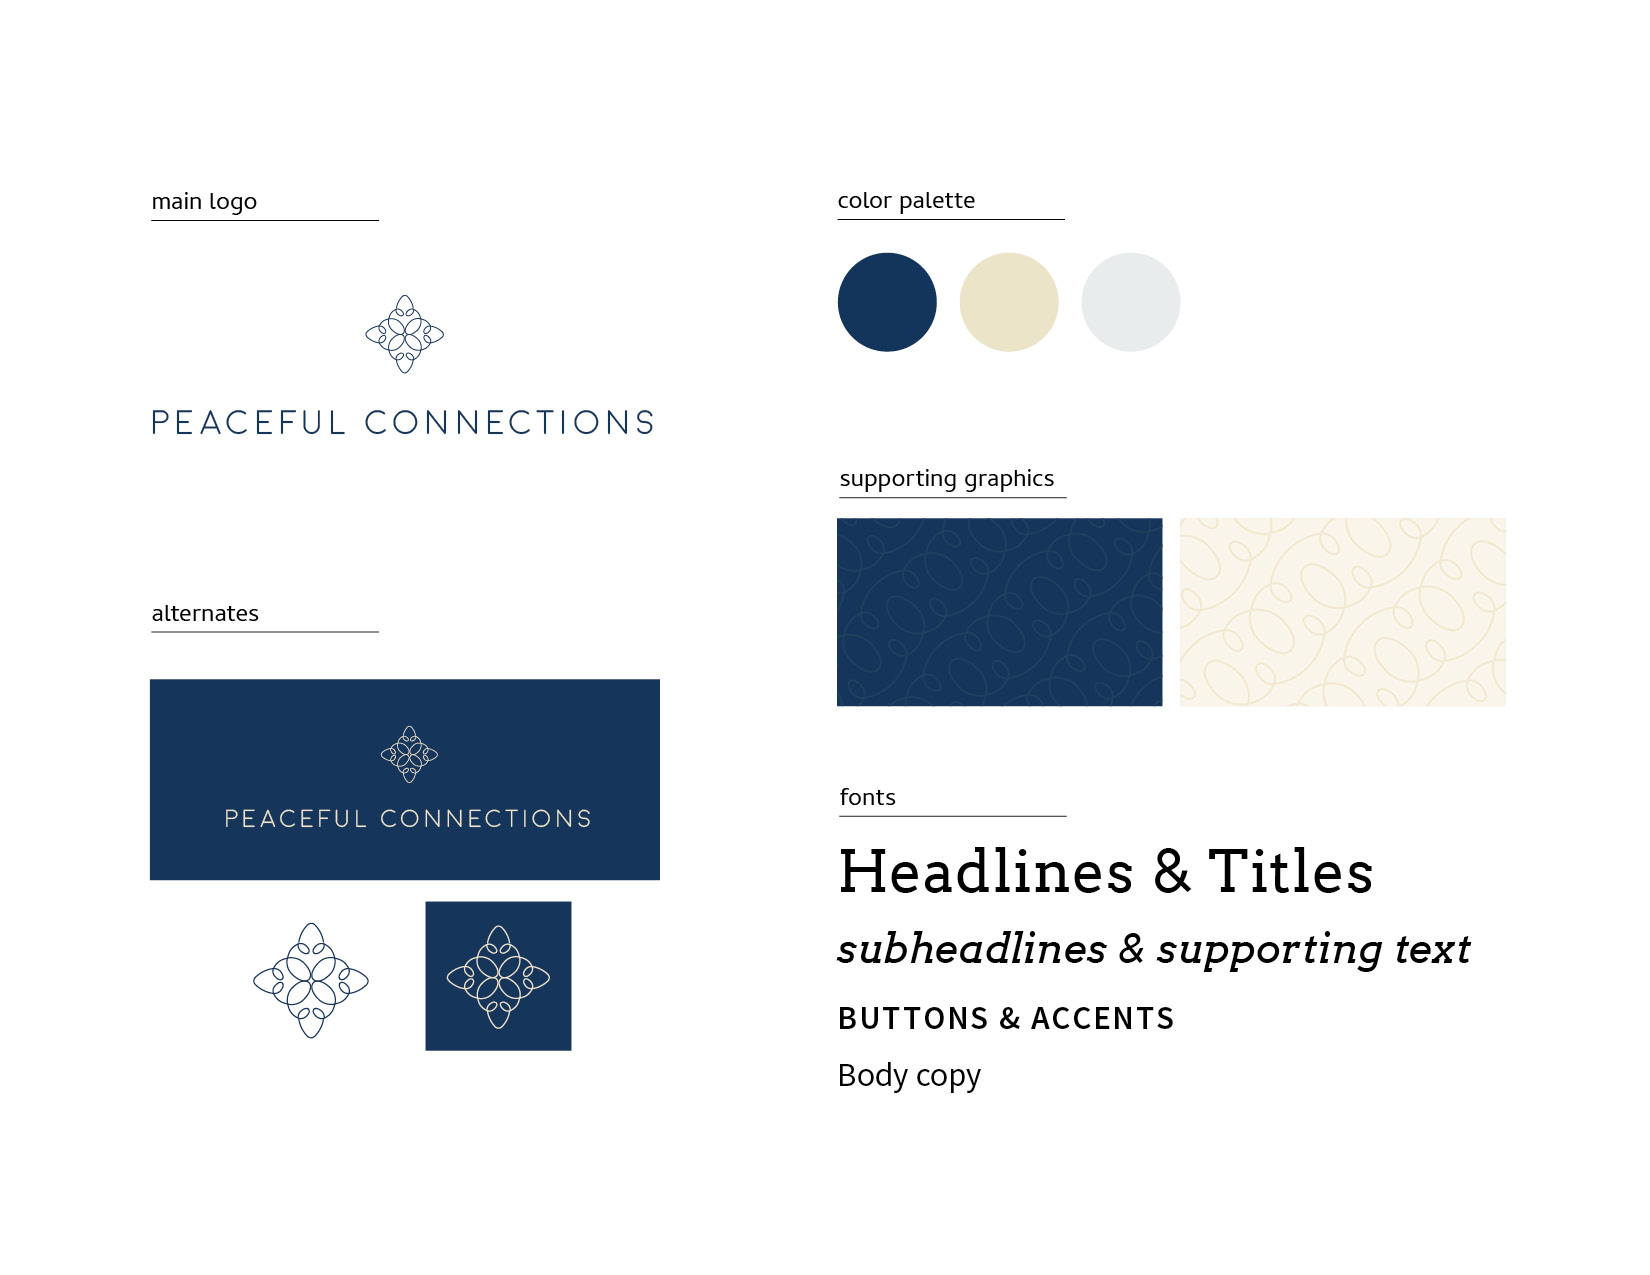 massage therapy branding: Peaceful Connections Supporting Design Elements